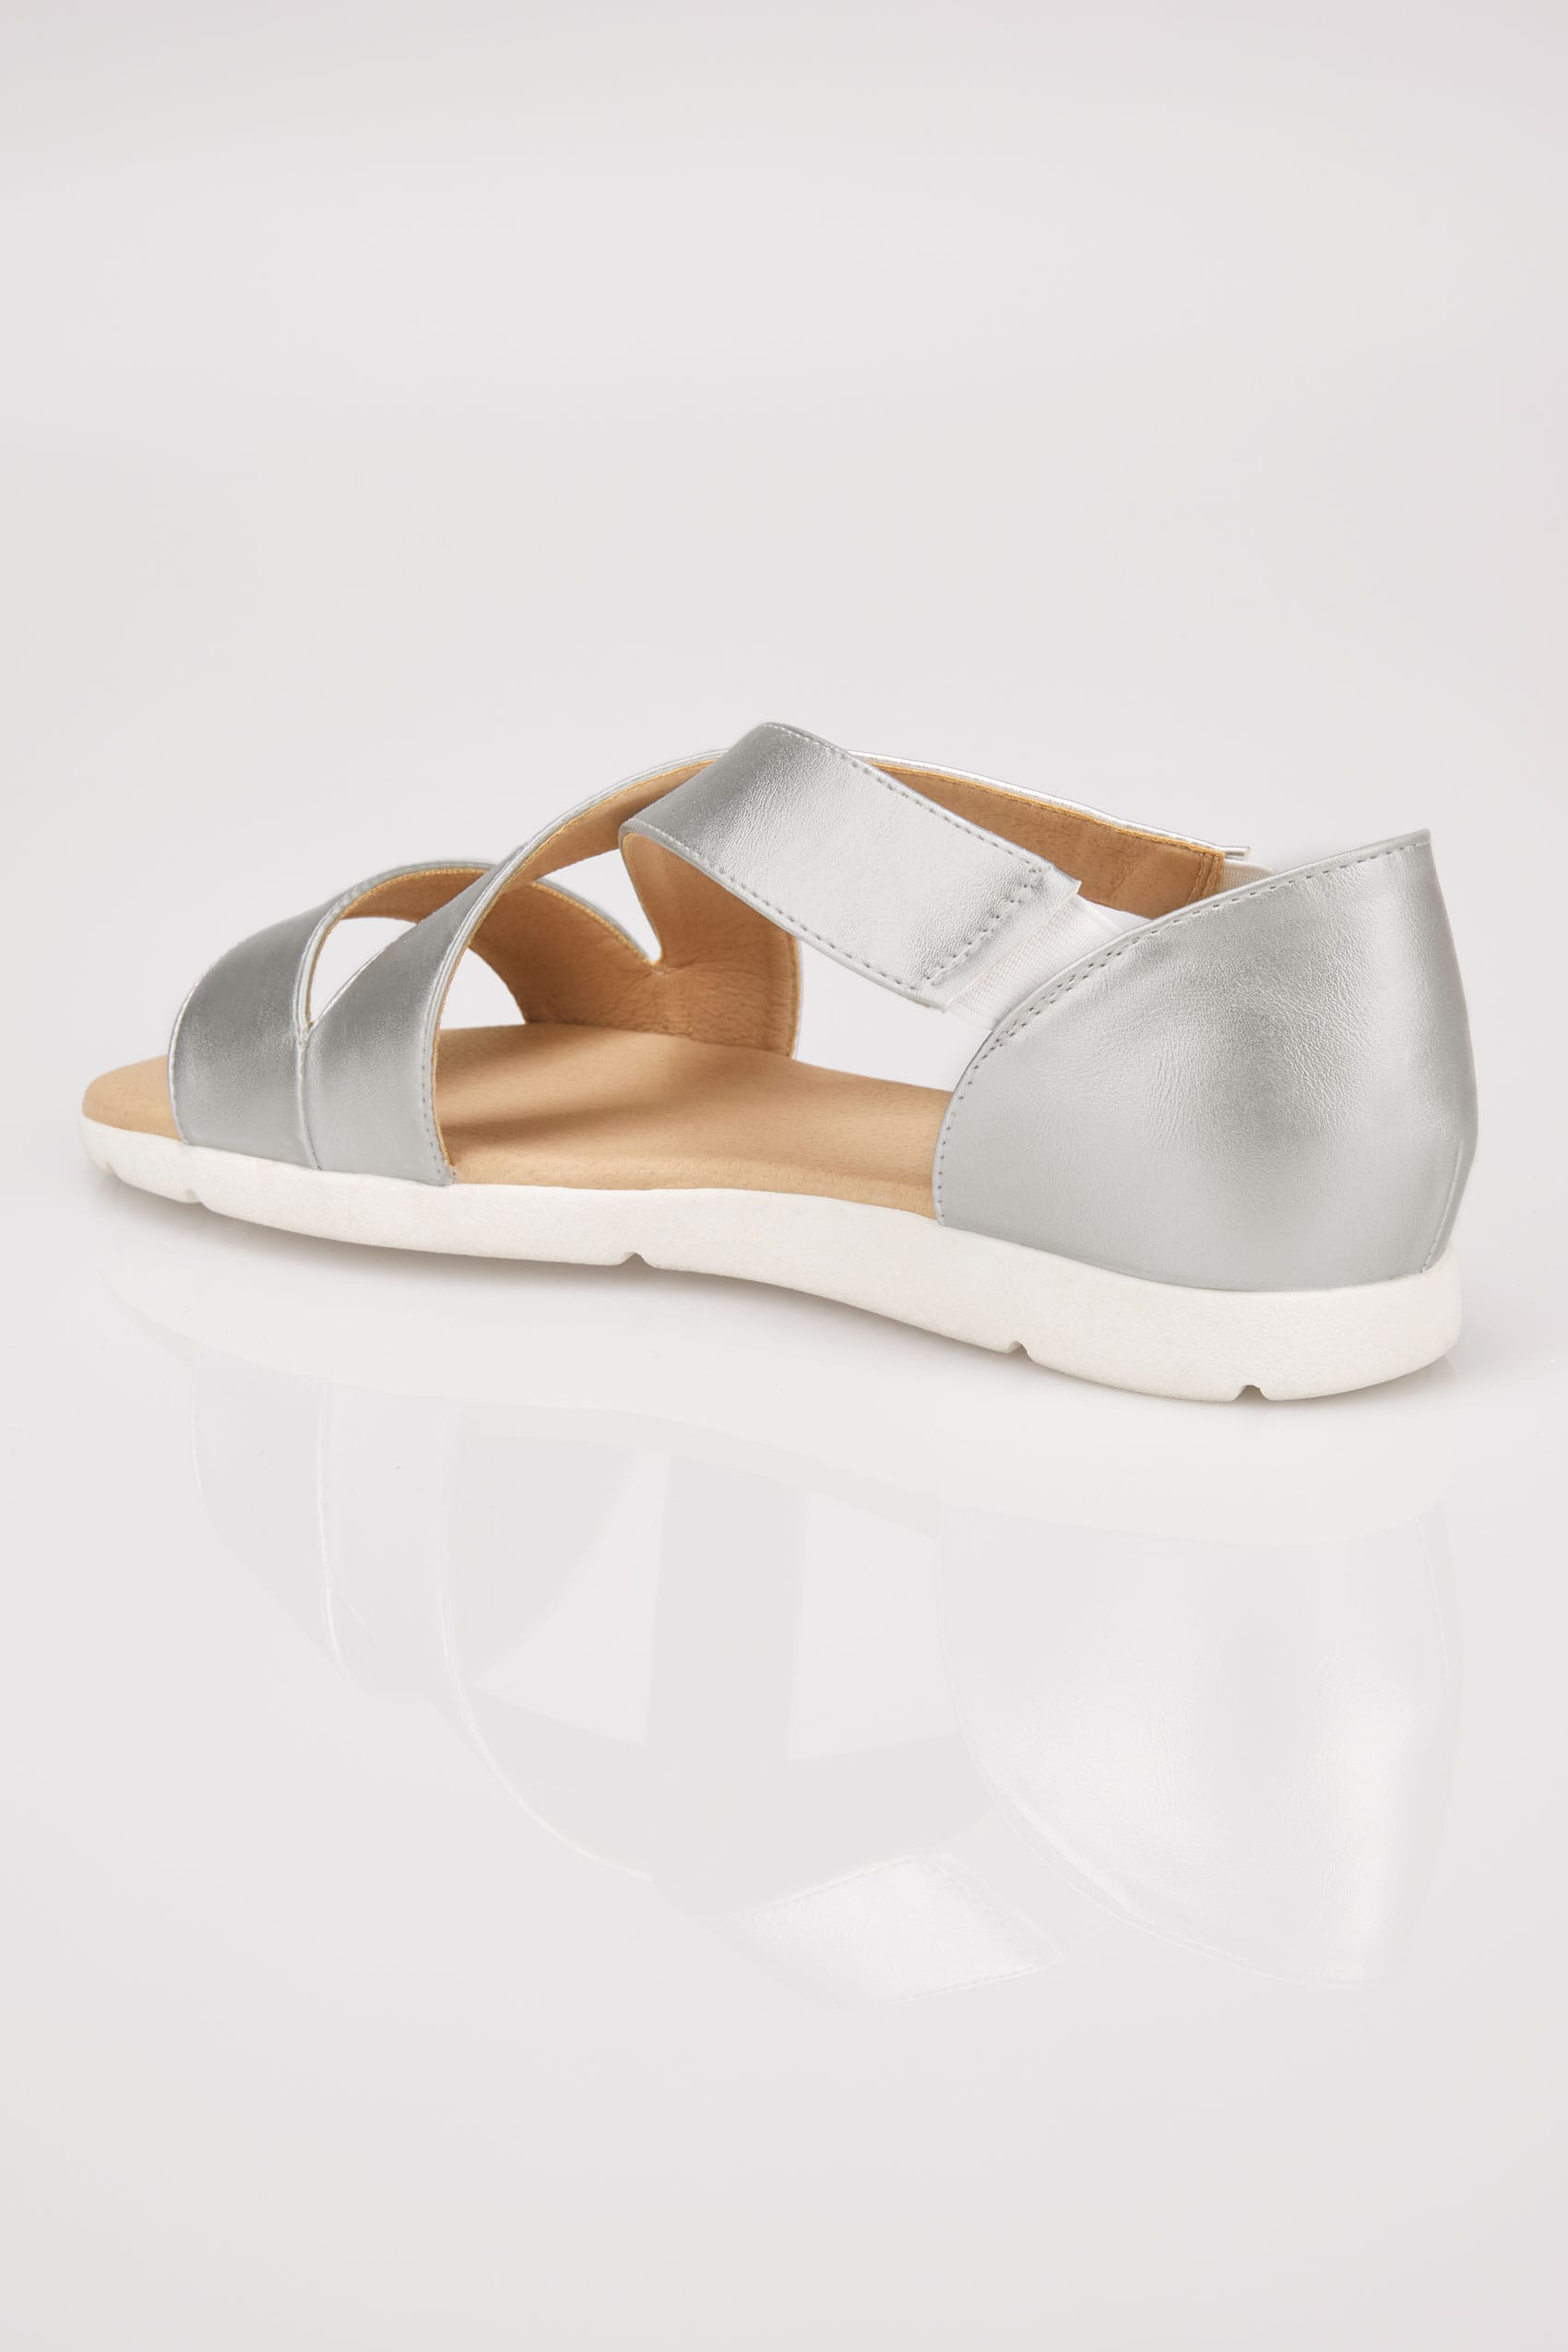 Silver Cross Over Strap Sandals In Eee Fit-5879